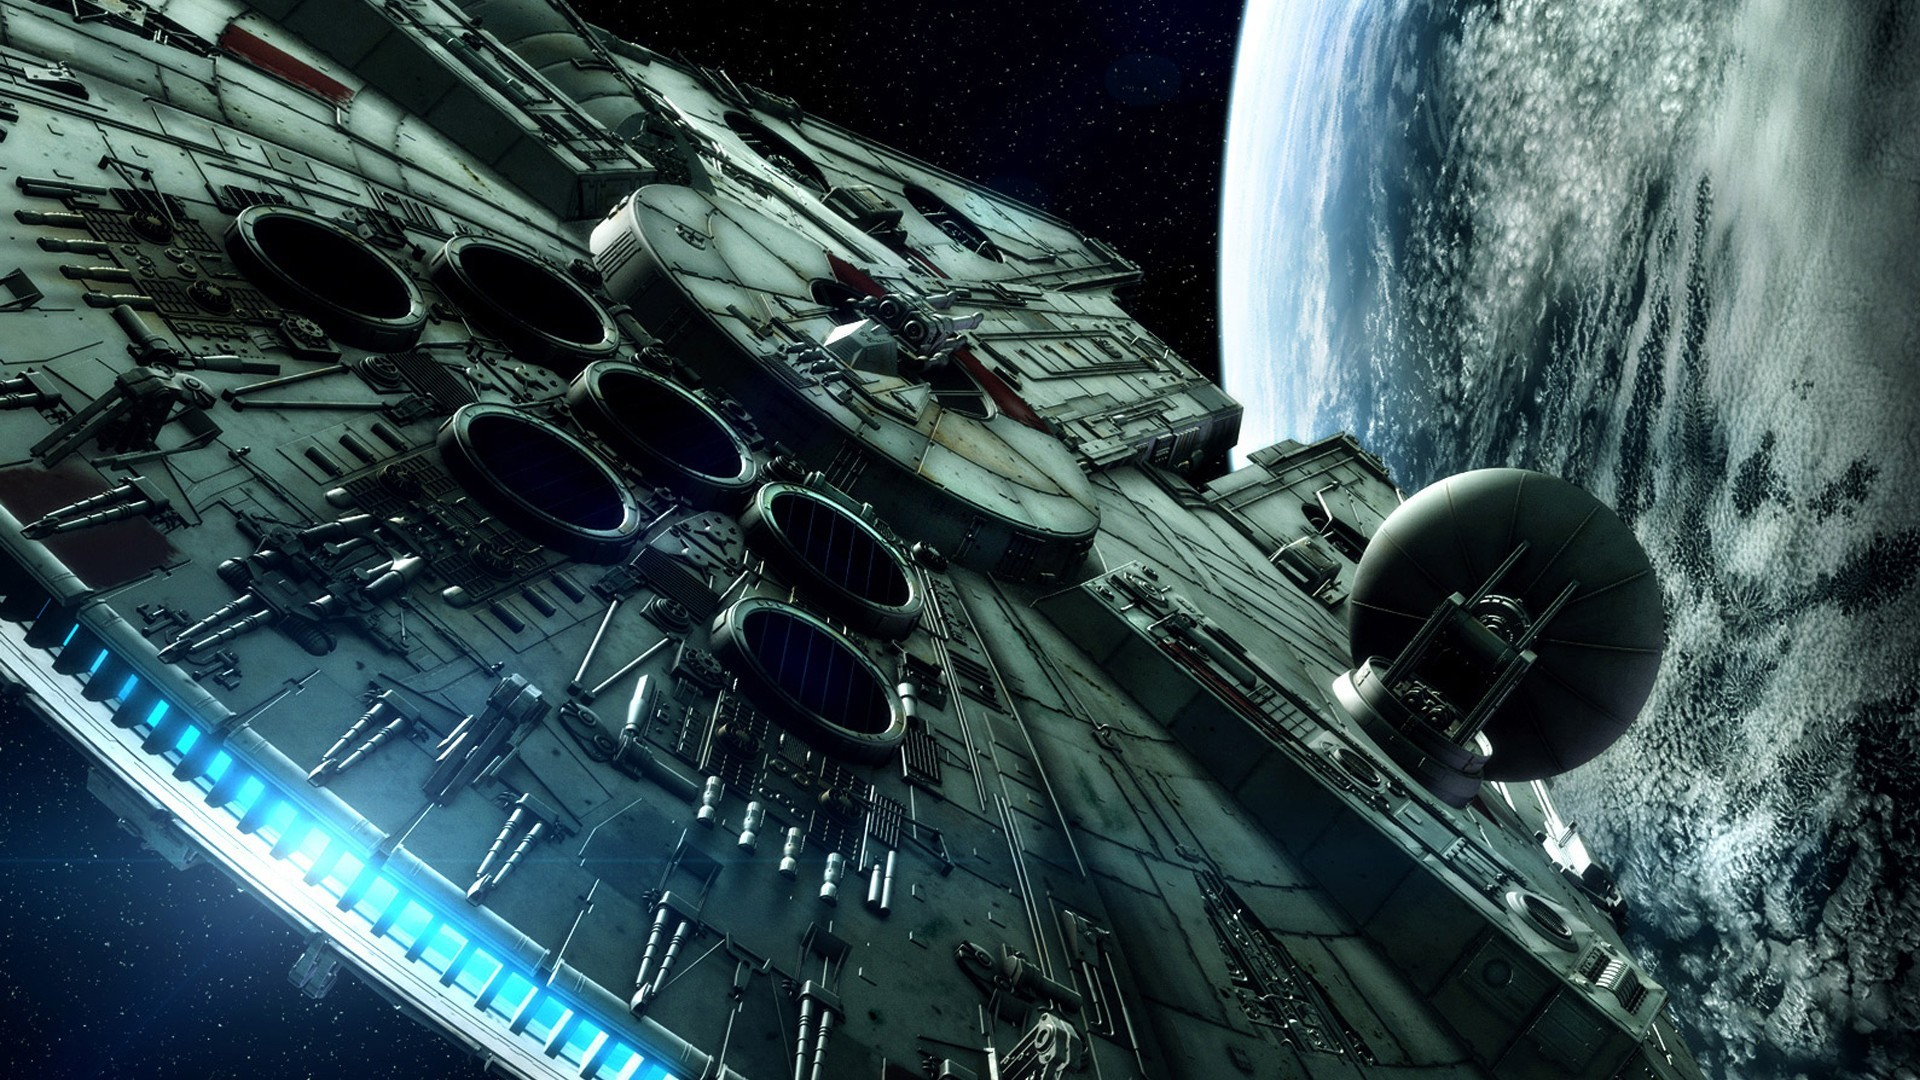 download awesome star wars wallpaper 45246 1920x1080 px